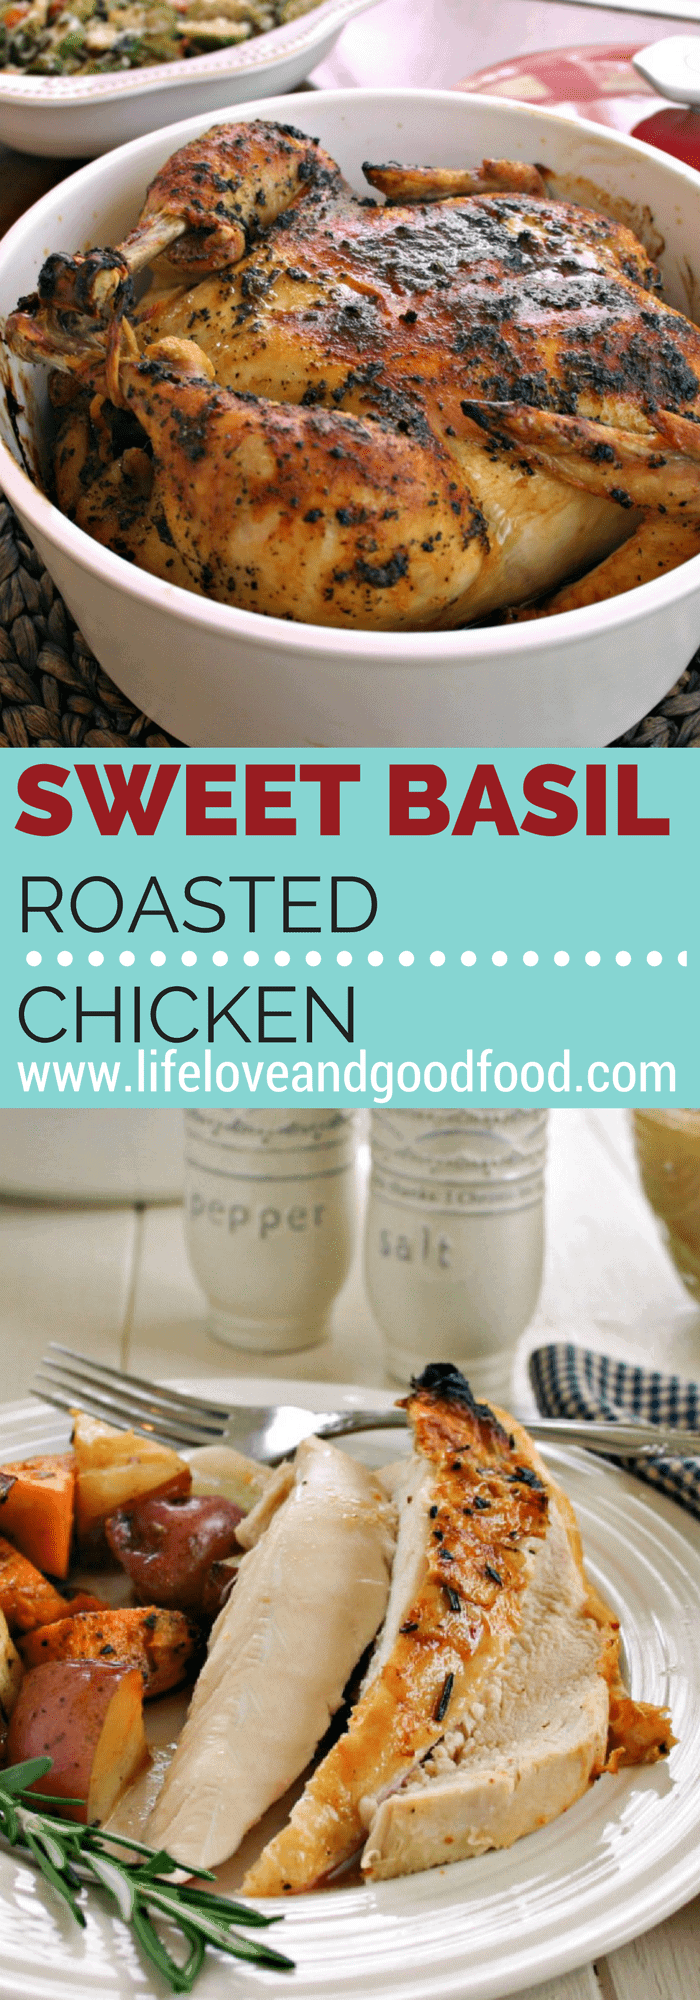 Getting back to the basics in the kitchen with Sweet Basil Roasted Chicken – moist, juicy, and the ultimate Sunday supper. #chickendinner #roastchicken